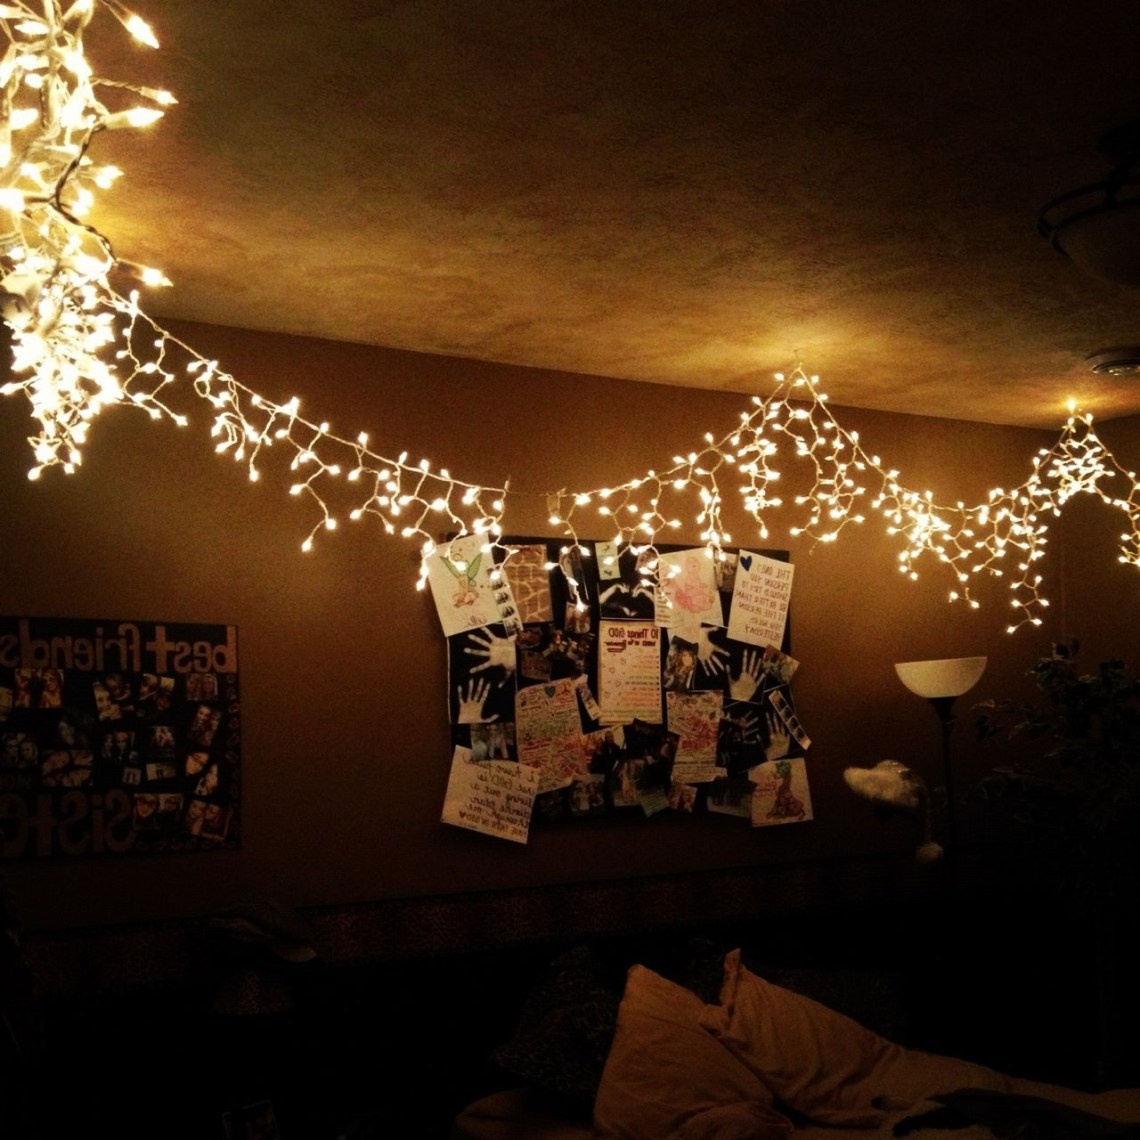 Christmas Lights Wrapping Around The Room Would Be So Cute